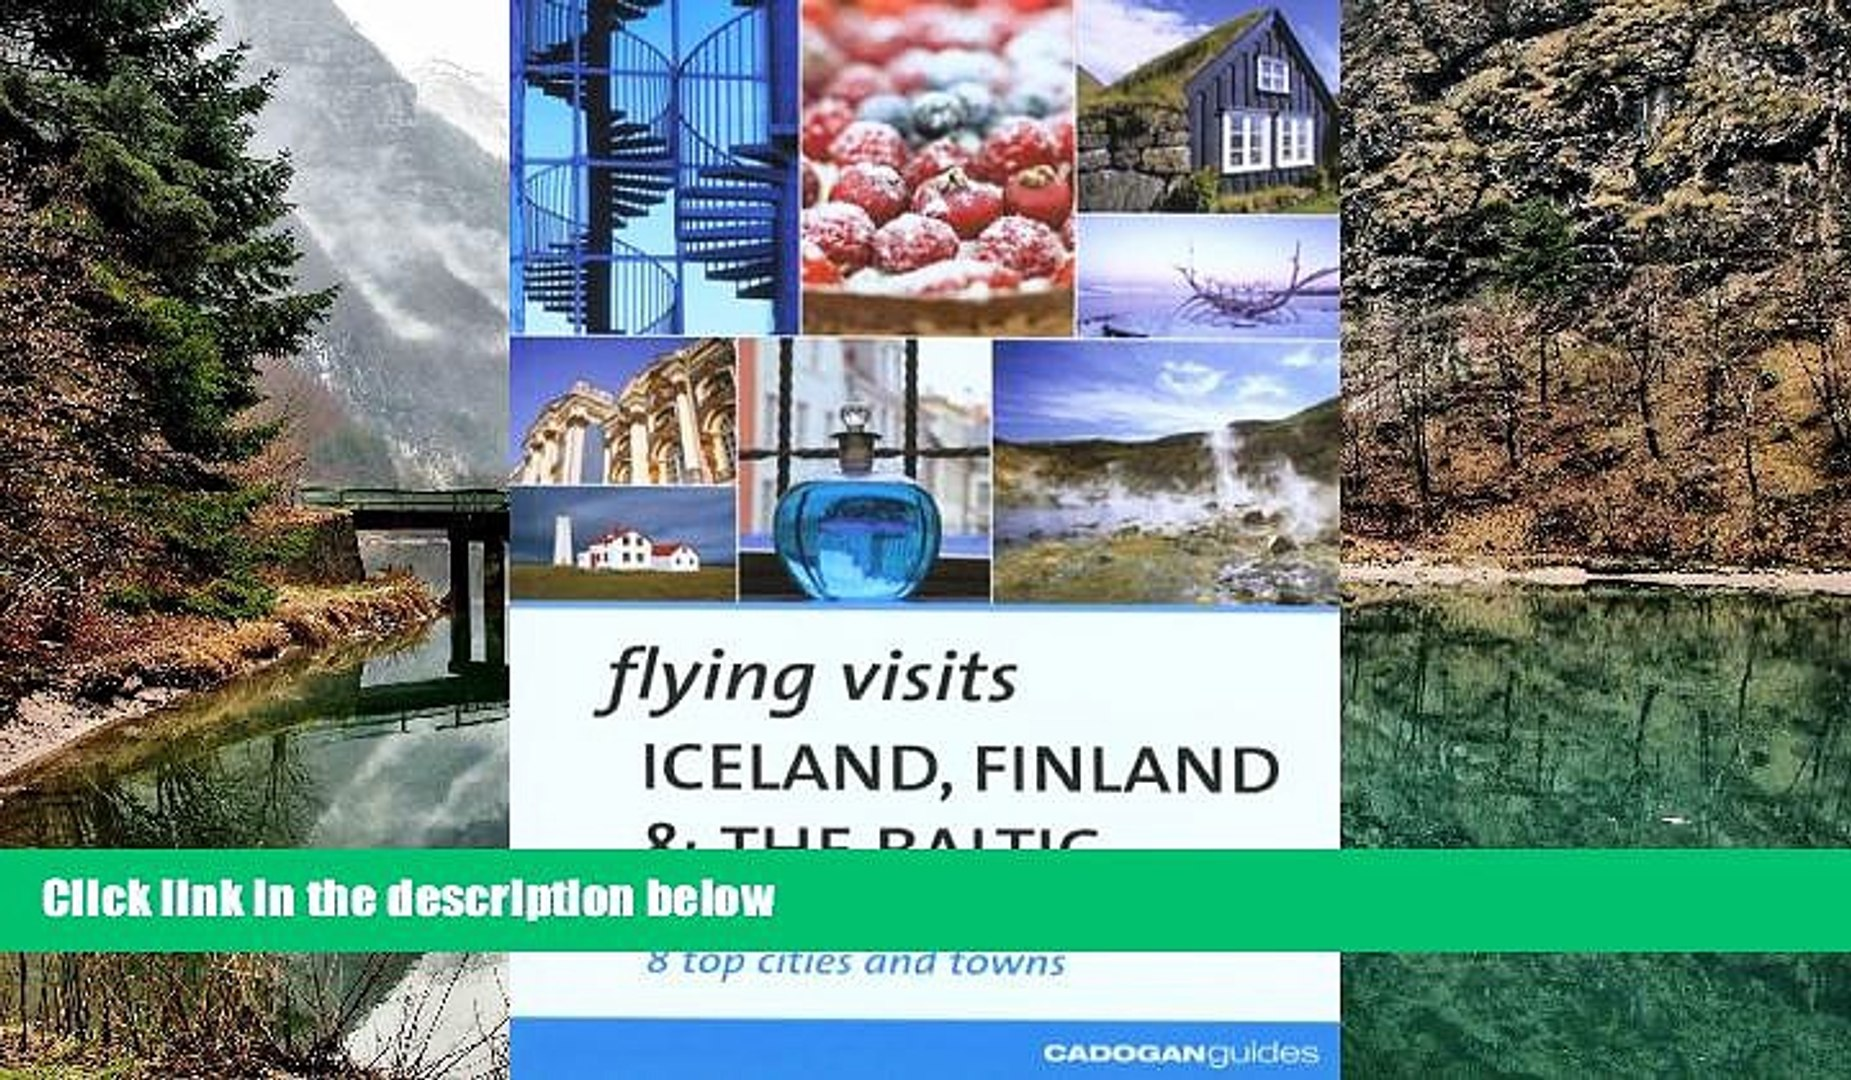 READ NOW  Flying Visits Iceland Finland   the Baltic (Flying Visits - Cadogan)  Premium Ebooks